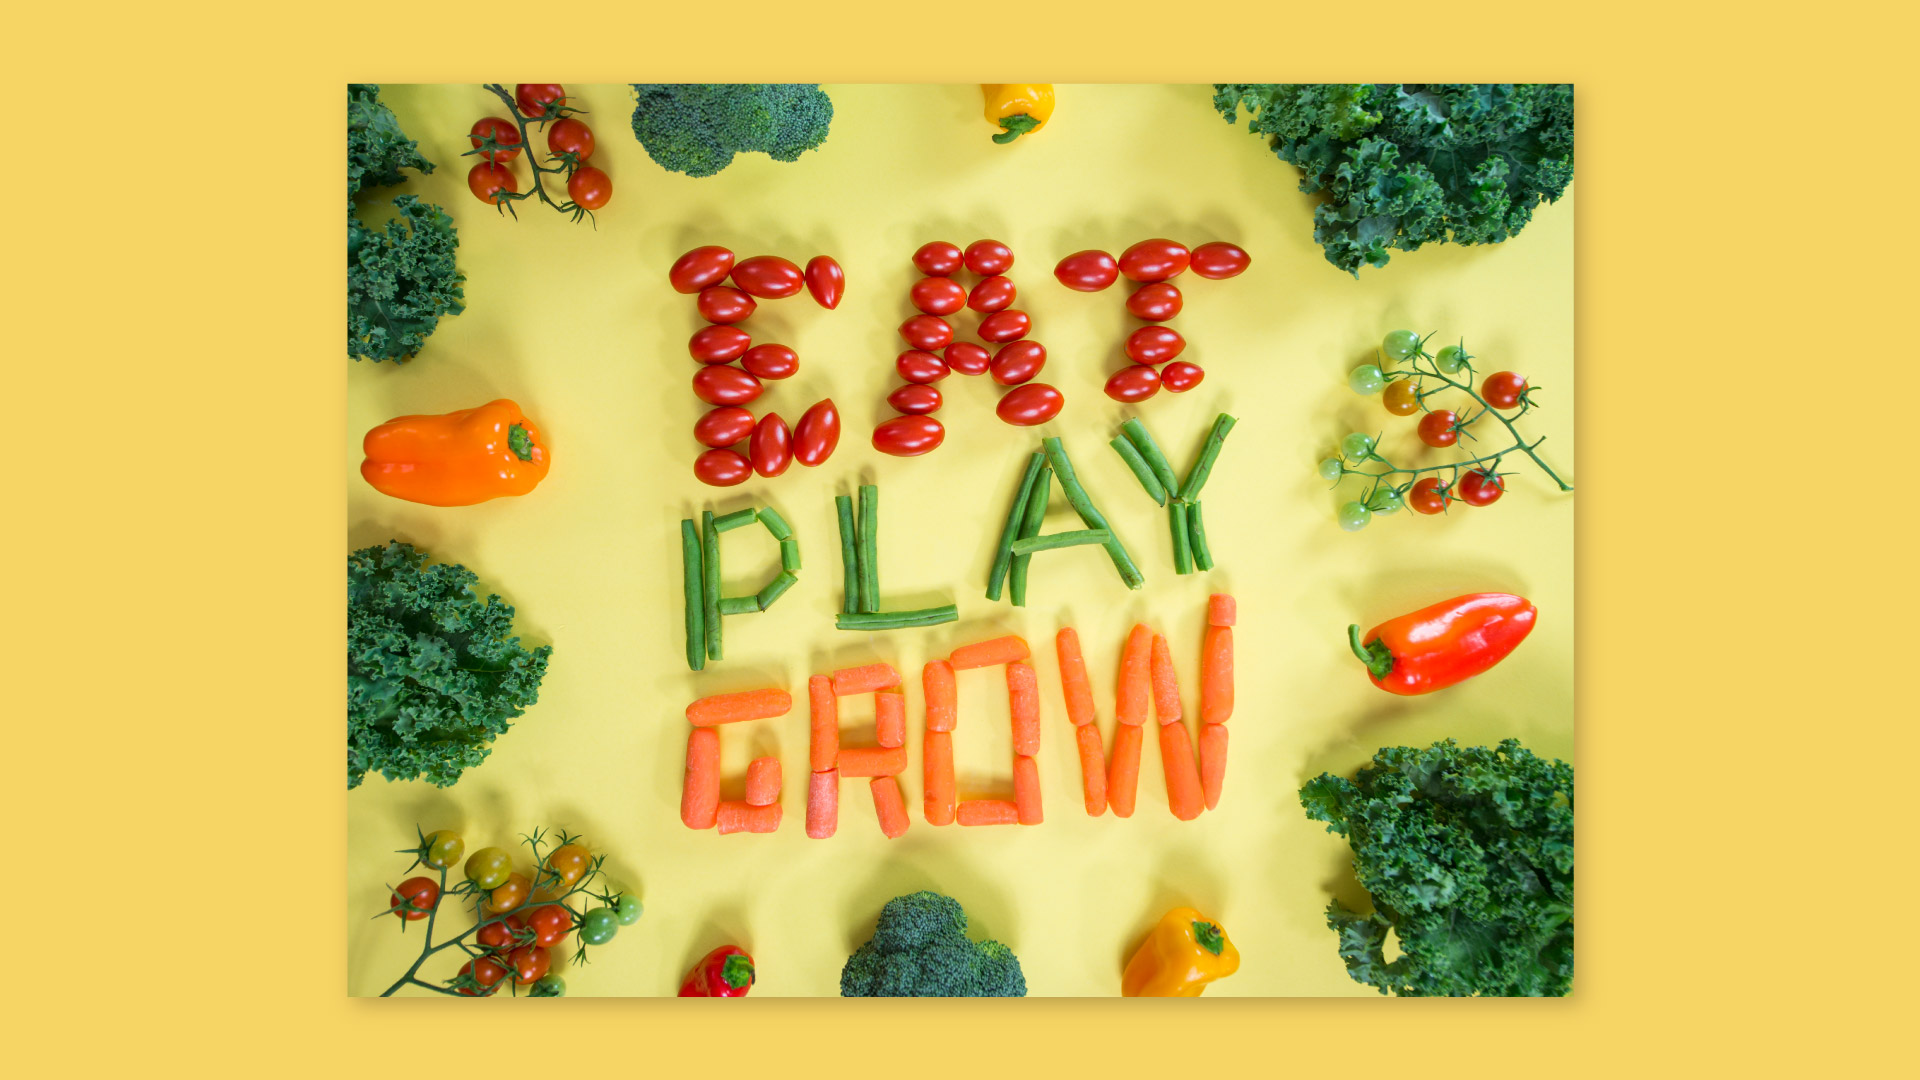 Eat play grow spelled with carrots, tomatoes and green beans